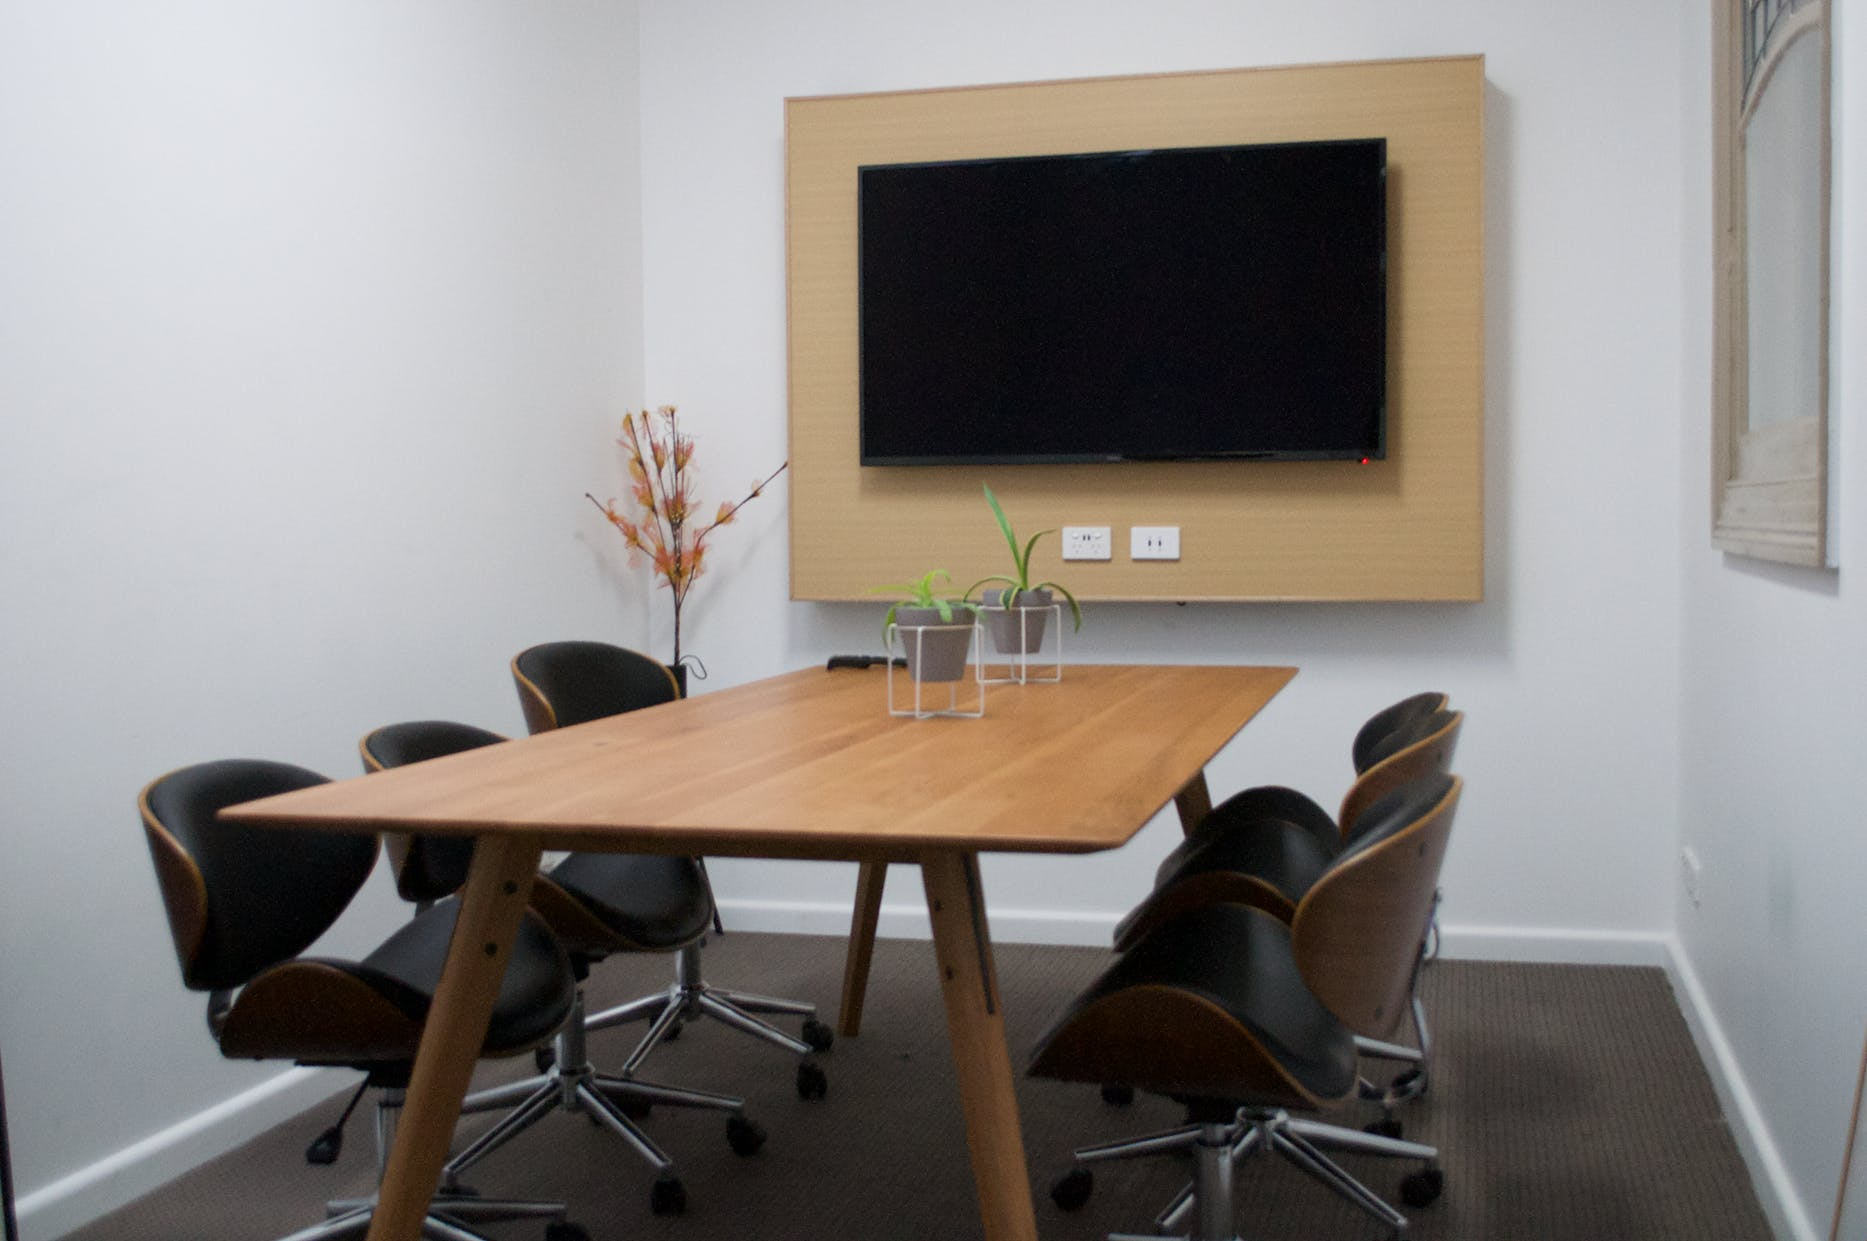 6 person, meeting room at Kindred Studios, image 1